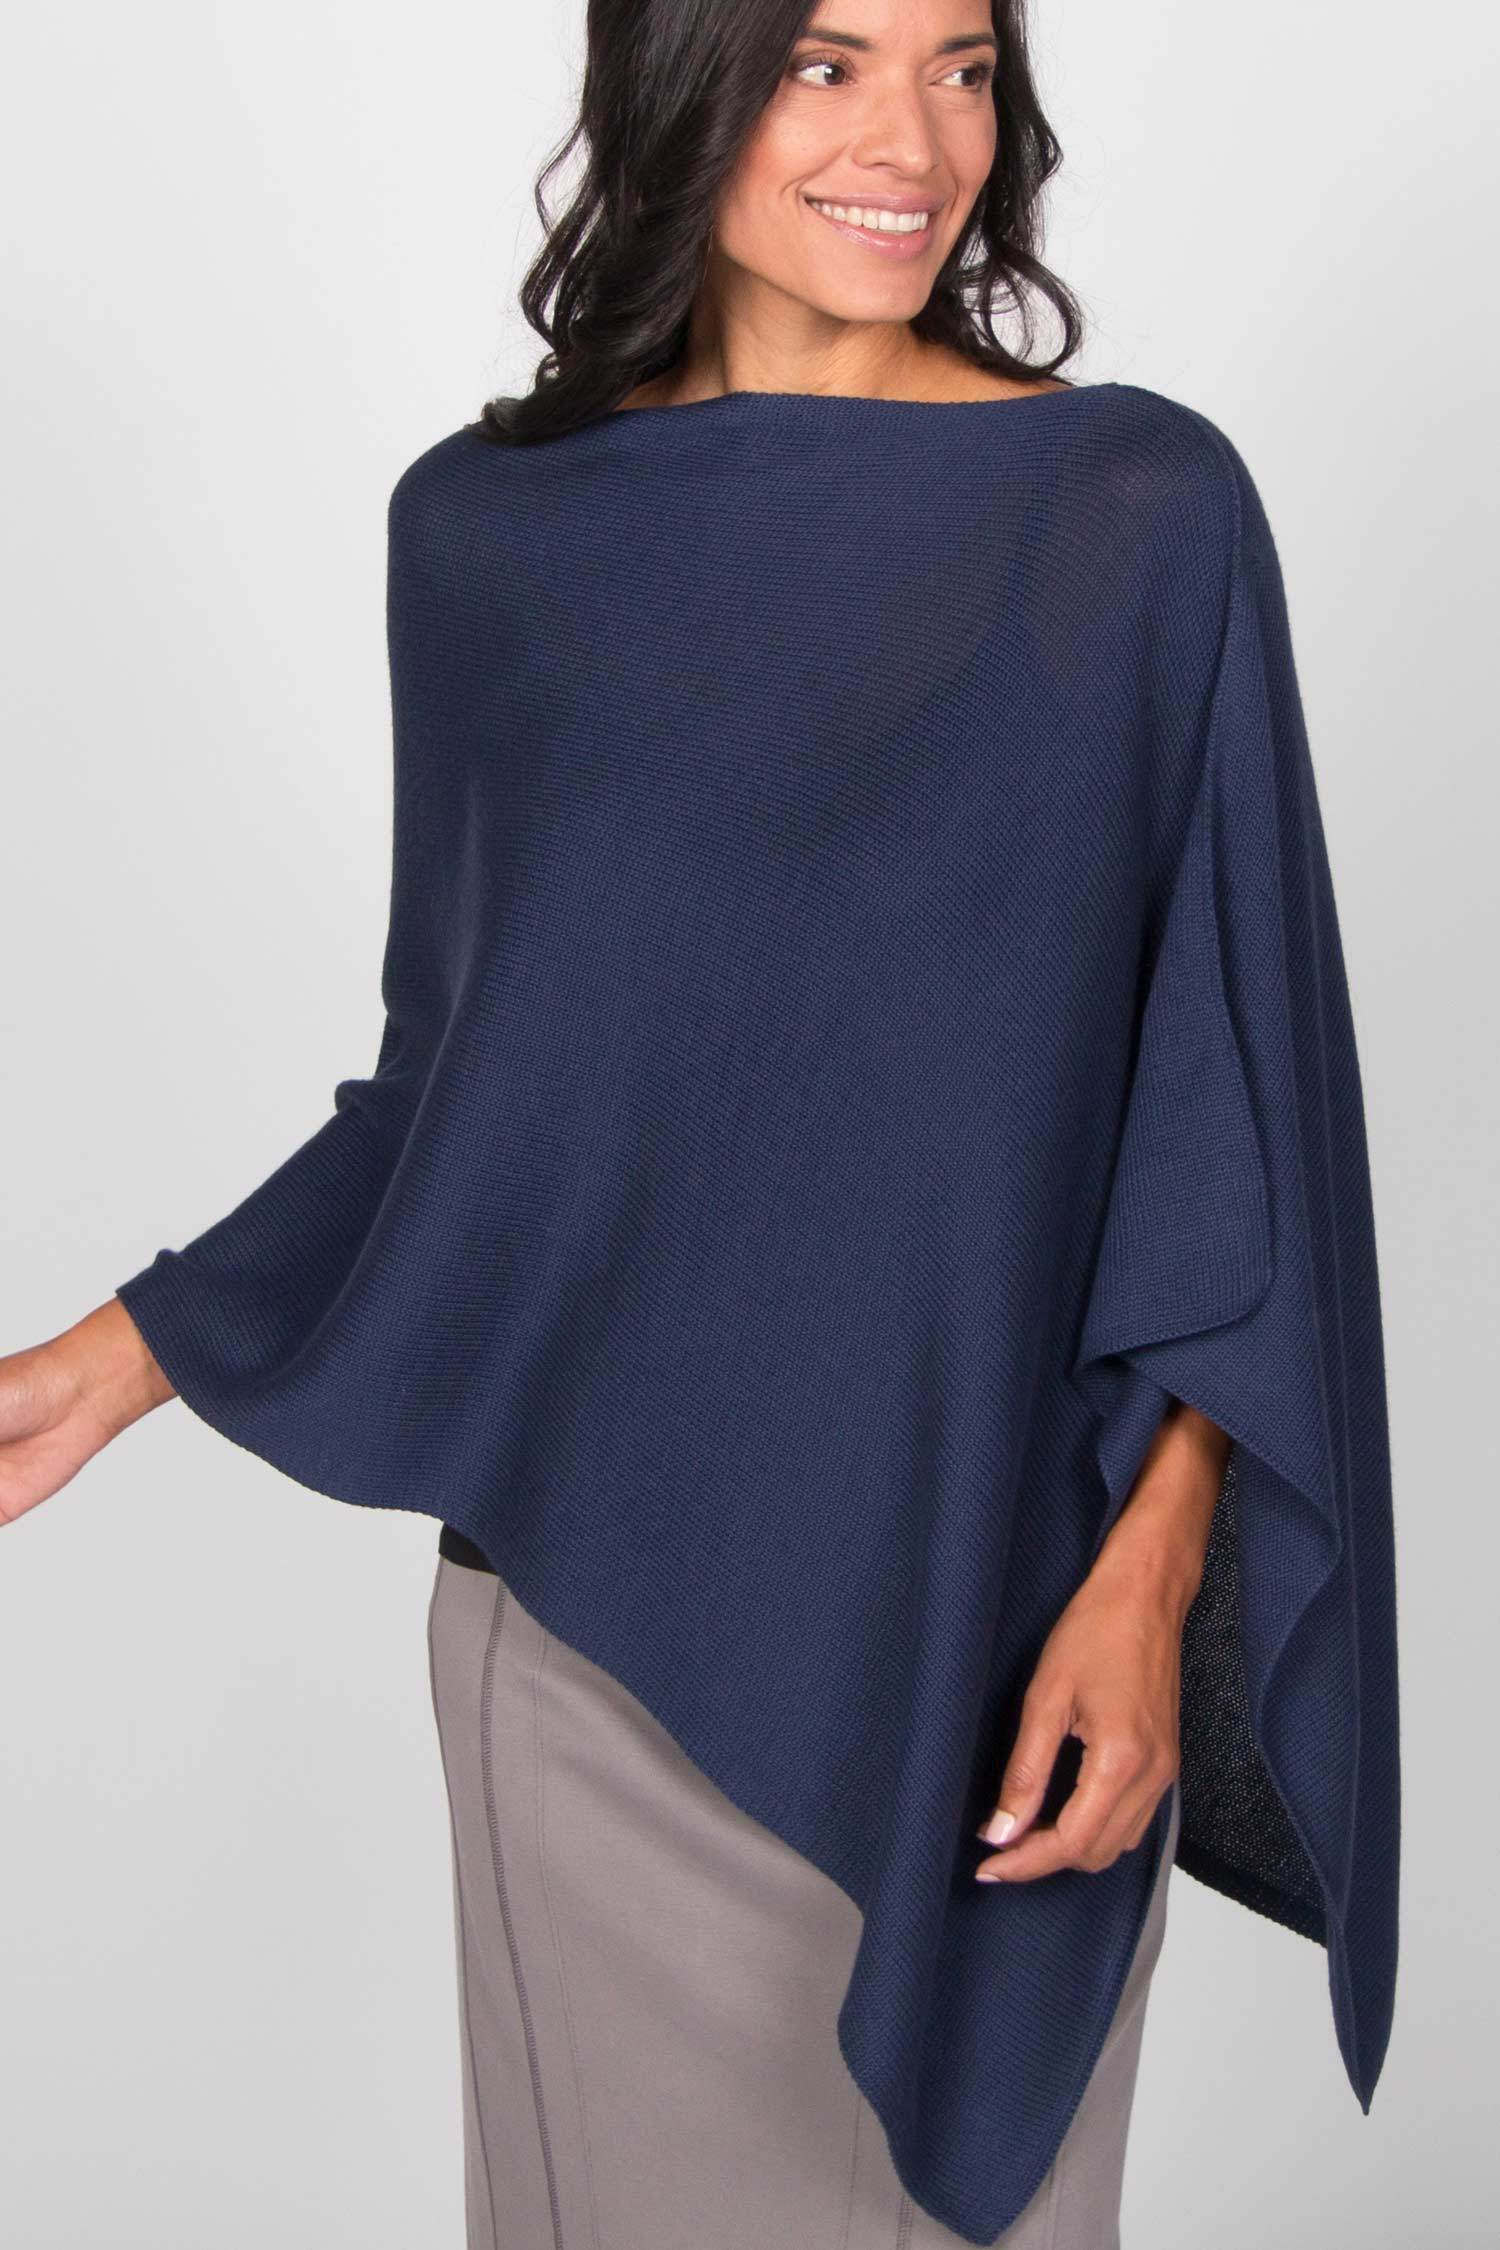 Knit Poncho for Women in Indigo Blue | Organic Cotton Clothing